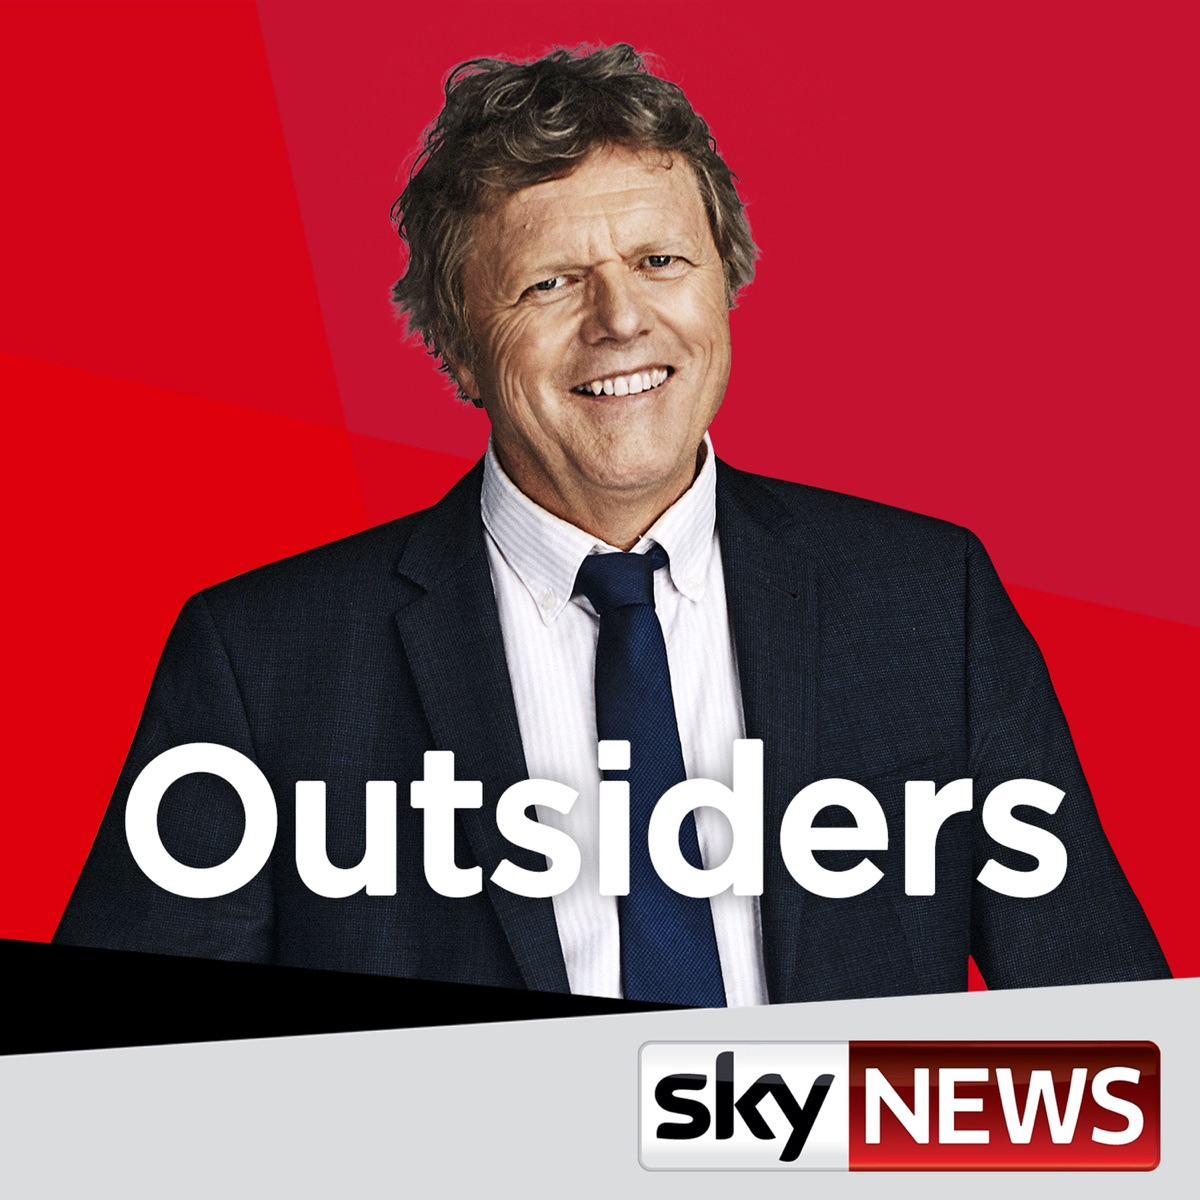 Sky News - Outsiders